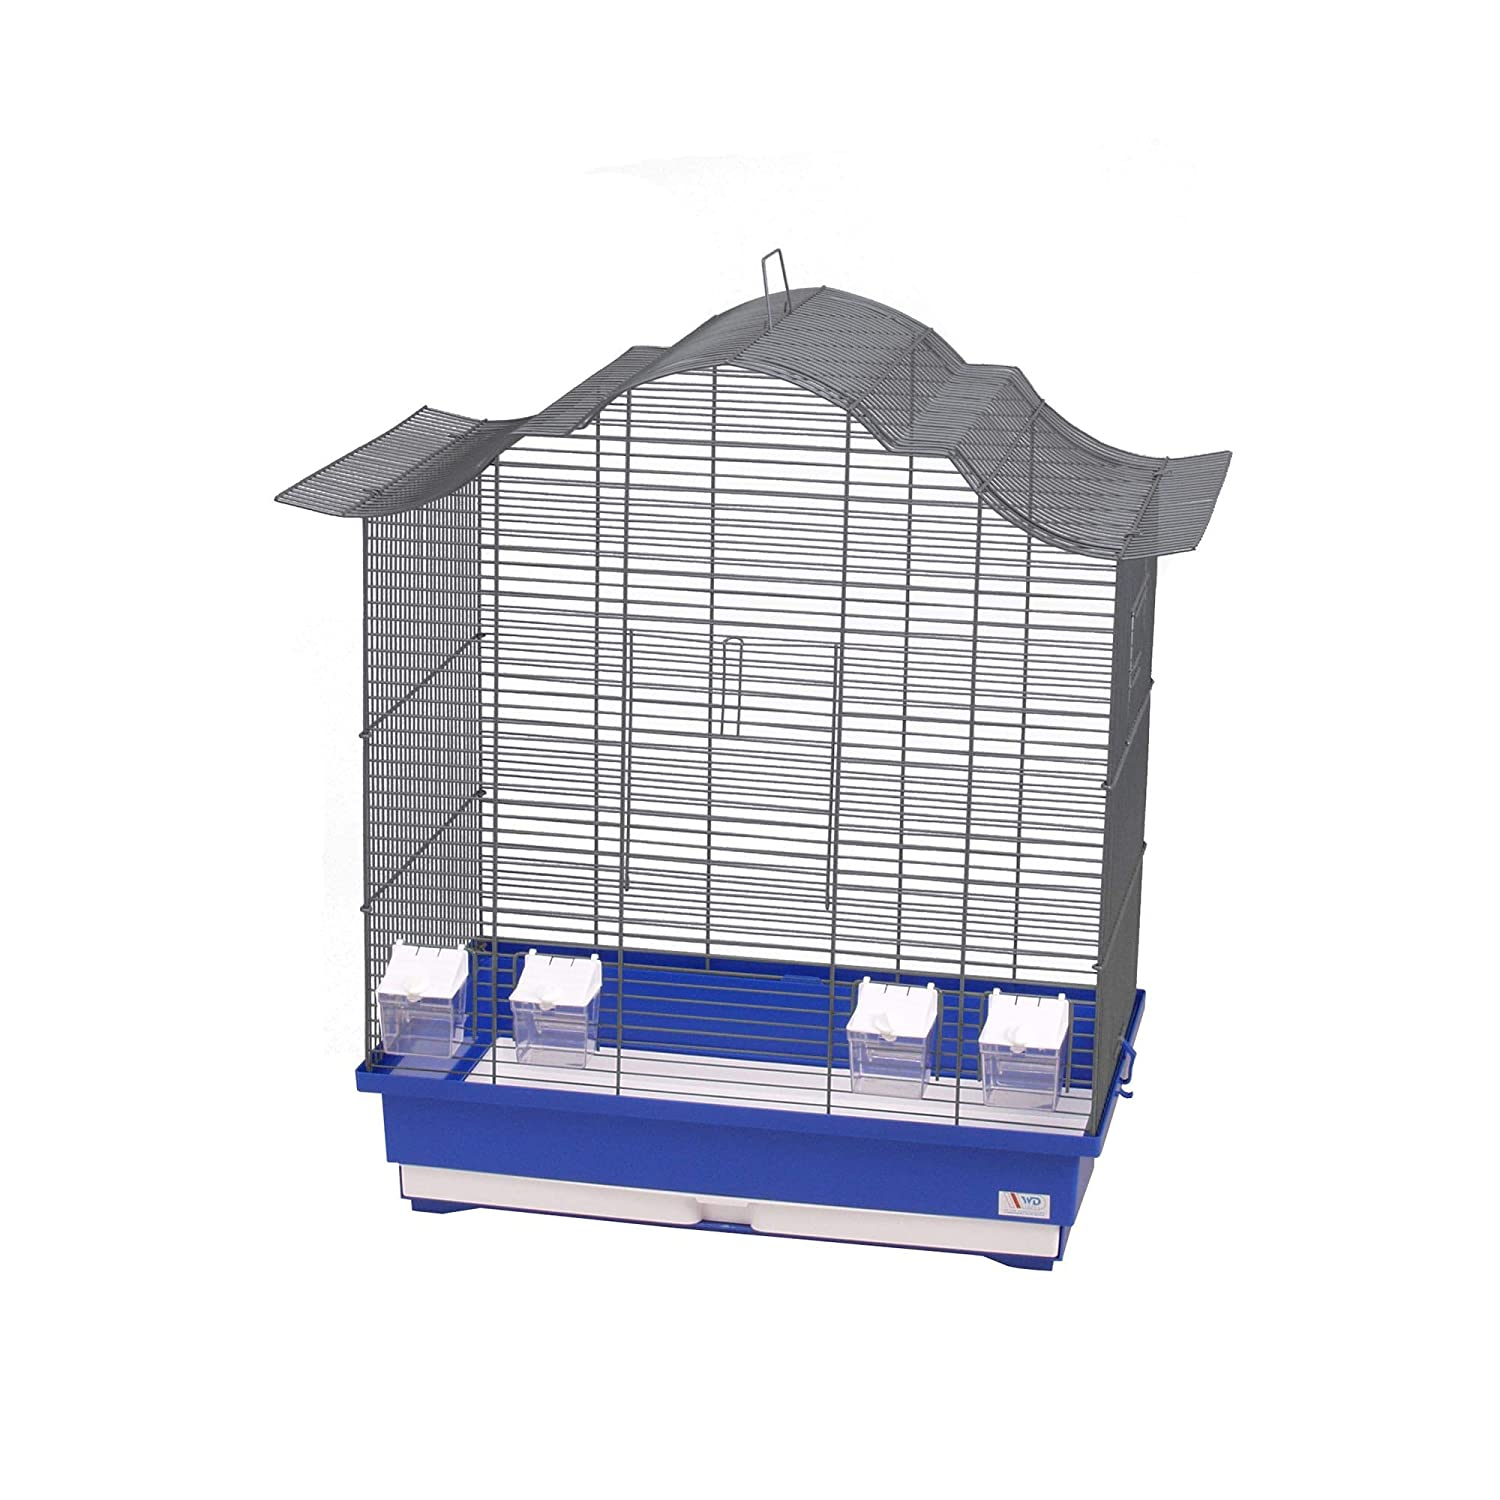 Decorwelt Asia 60 Bird Cages XXL bluee Outer Dimensions 70 x 42 x 72.5 cm Holiday Travel Cage Accessory Budgie Canary Cage Food Bowl Plastic Bird Model